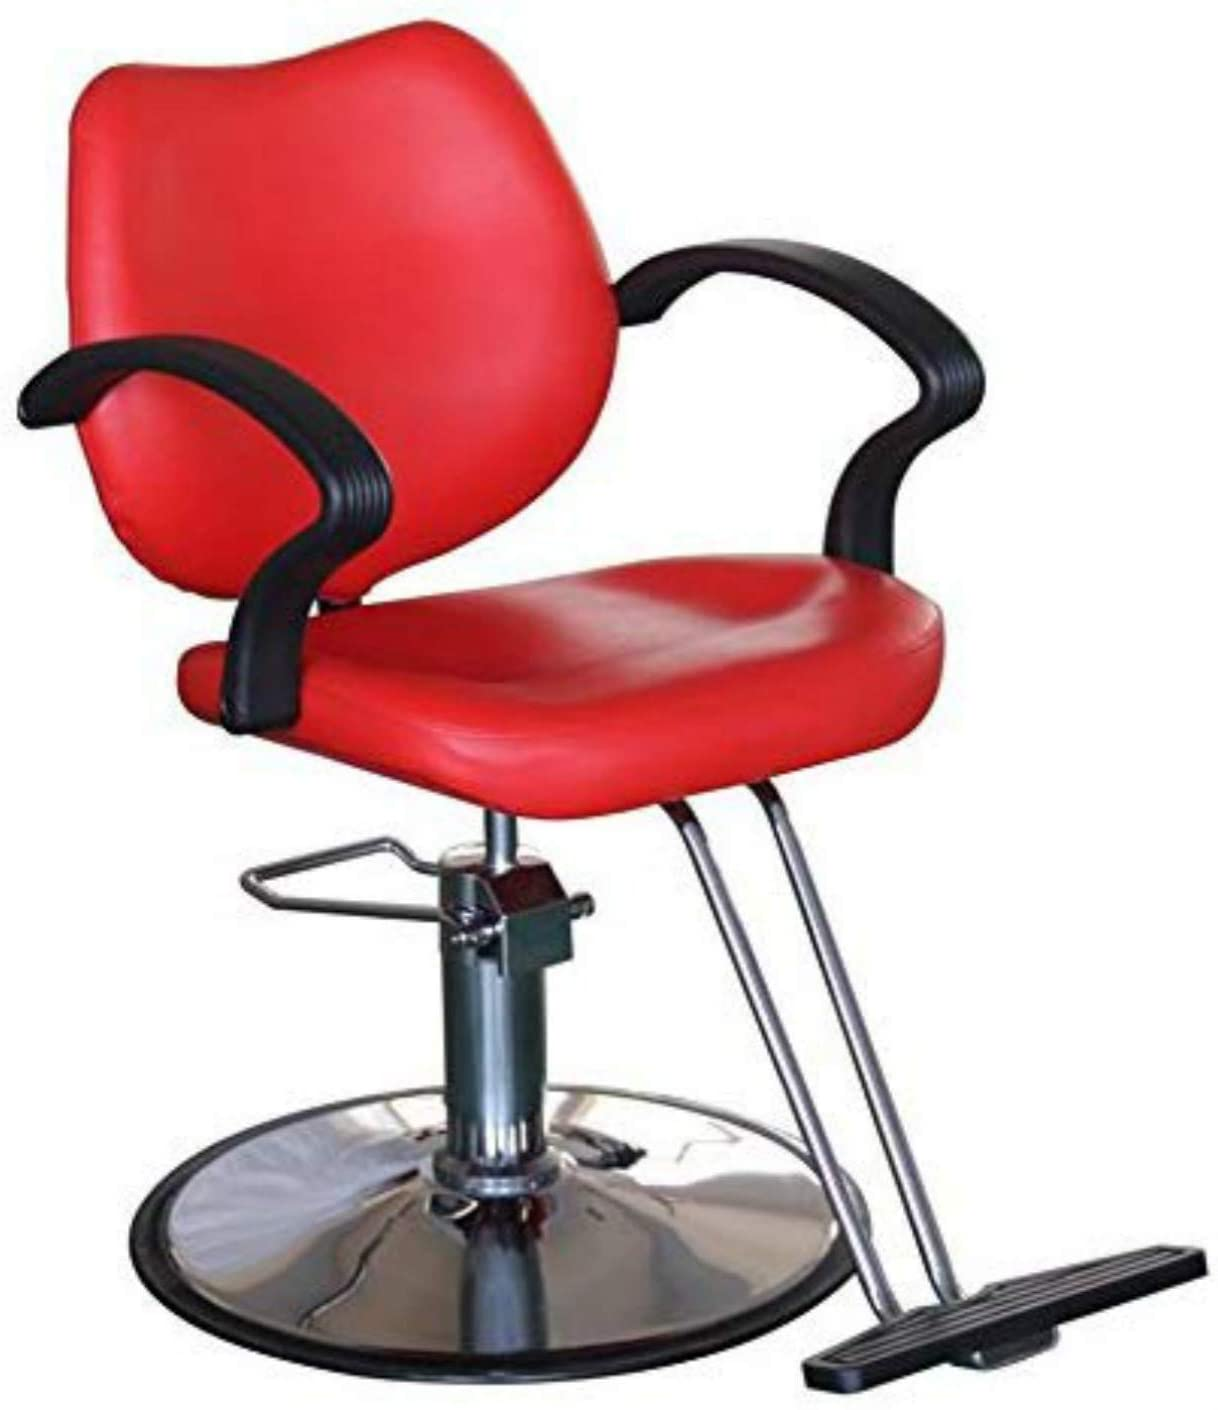 Salon Style Barber Chair Salon Chair for Hair Stylist Heavy Duty Tattoo Chair Shampoo Beauty Salon Equipment